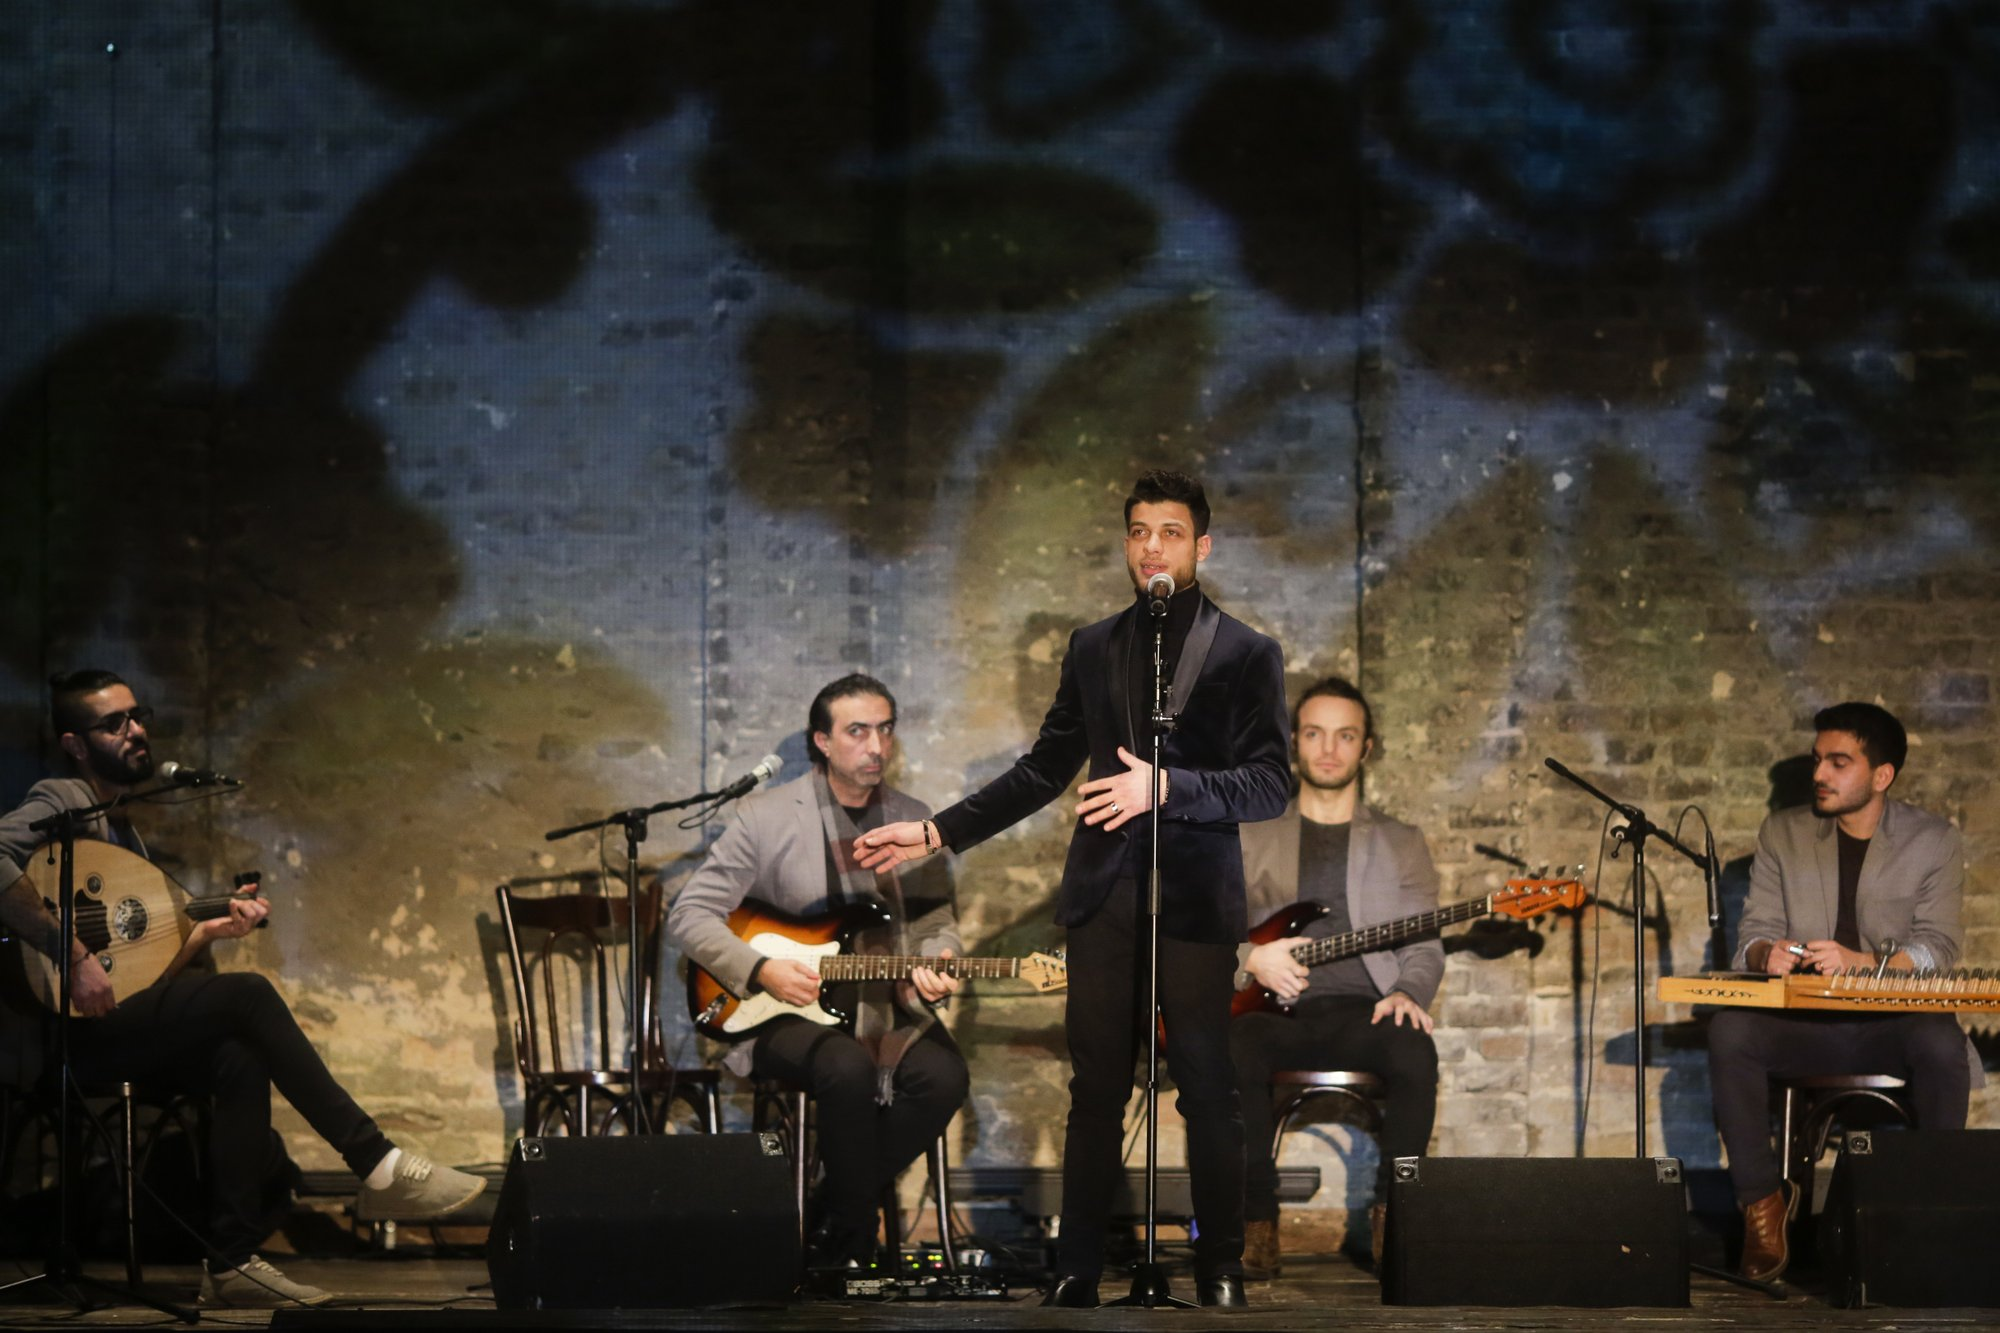 Syrian band brings music of Aleppo to Berlin